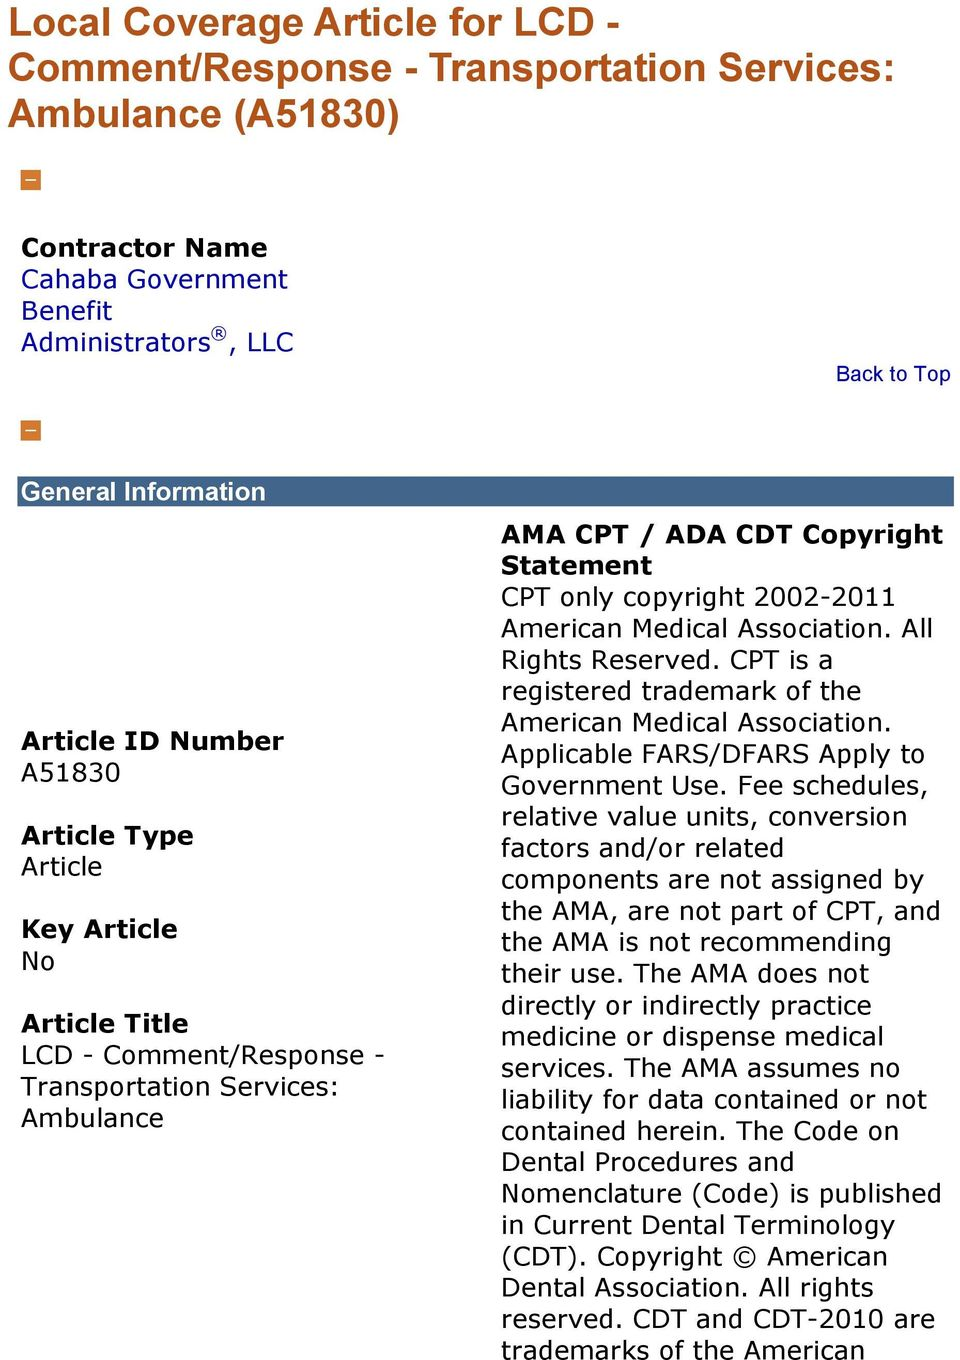 Copyright Statement CPT only copyright 2002-2011 American Medical Association. All Rights Reserved. CPT is a registered trademark of the American Medical Association.